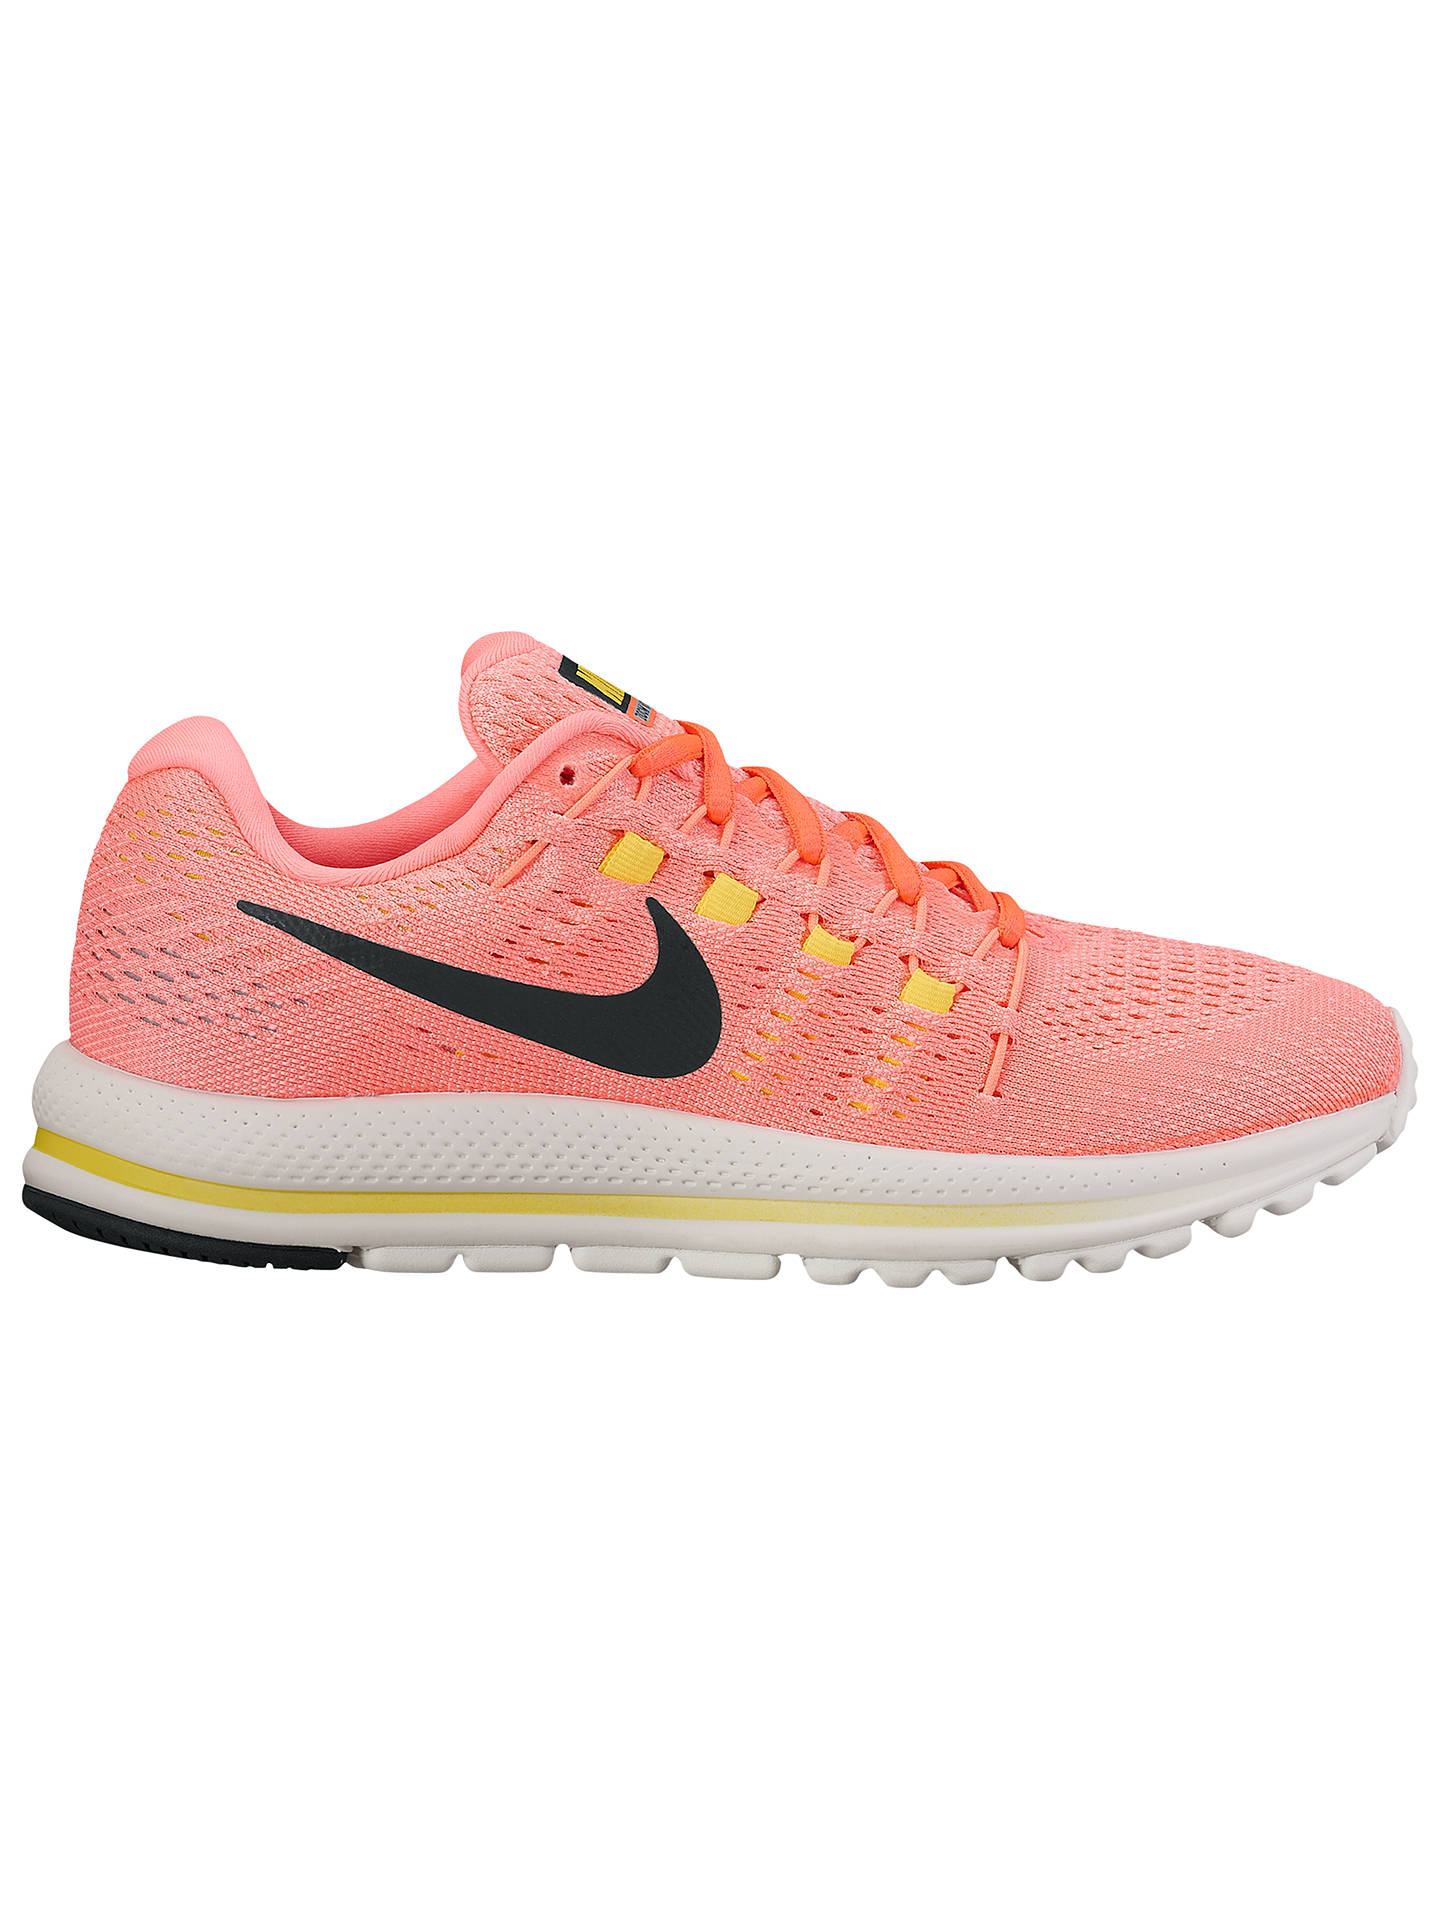 8e06032ef67a coupon code nike air zoom pegasus 35 mens running shoe 3664d 70d24  uk  buynike air zoom vomero 12 womens running shoes hot punch lava glow 4 98dd2  63974